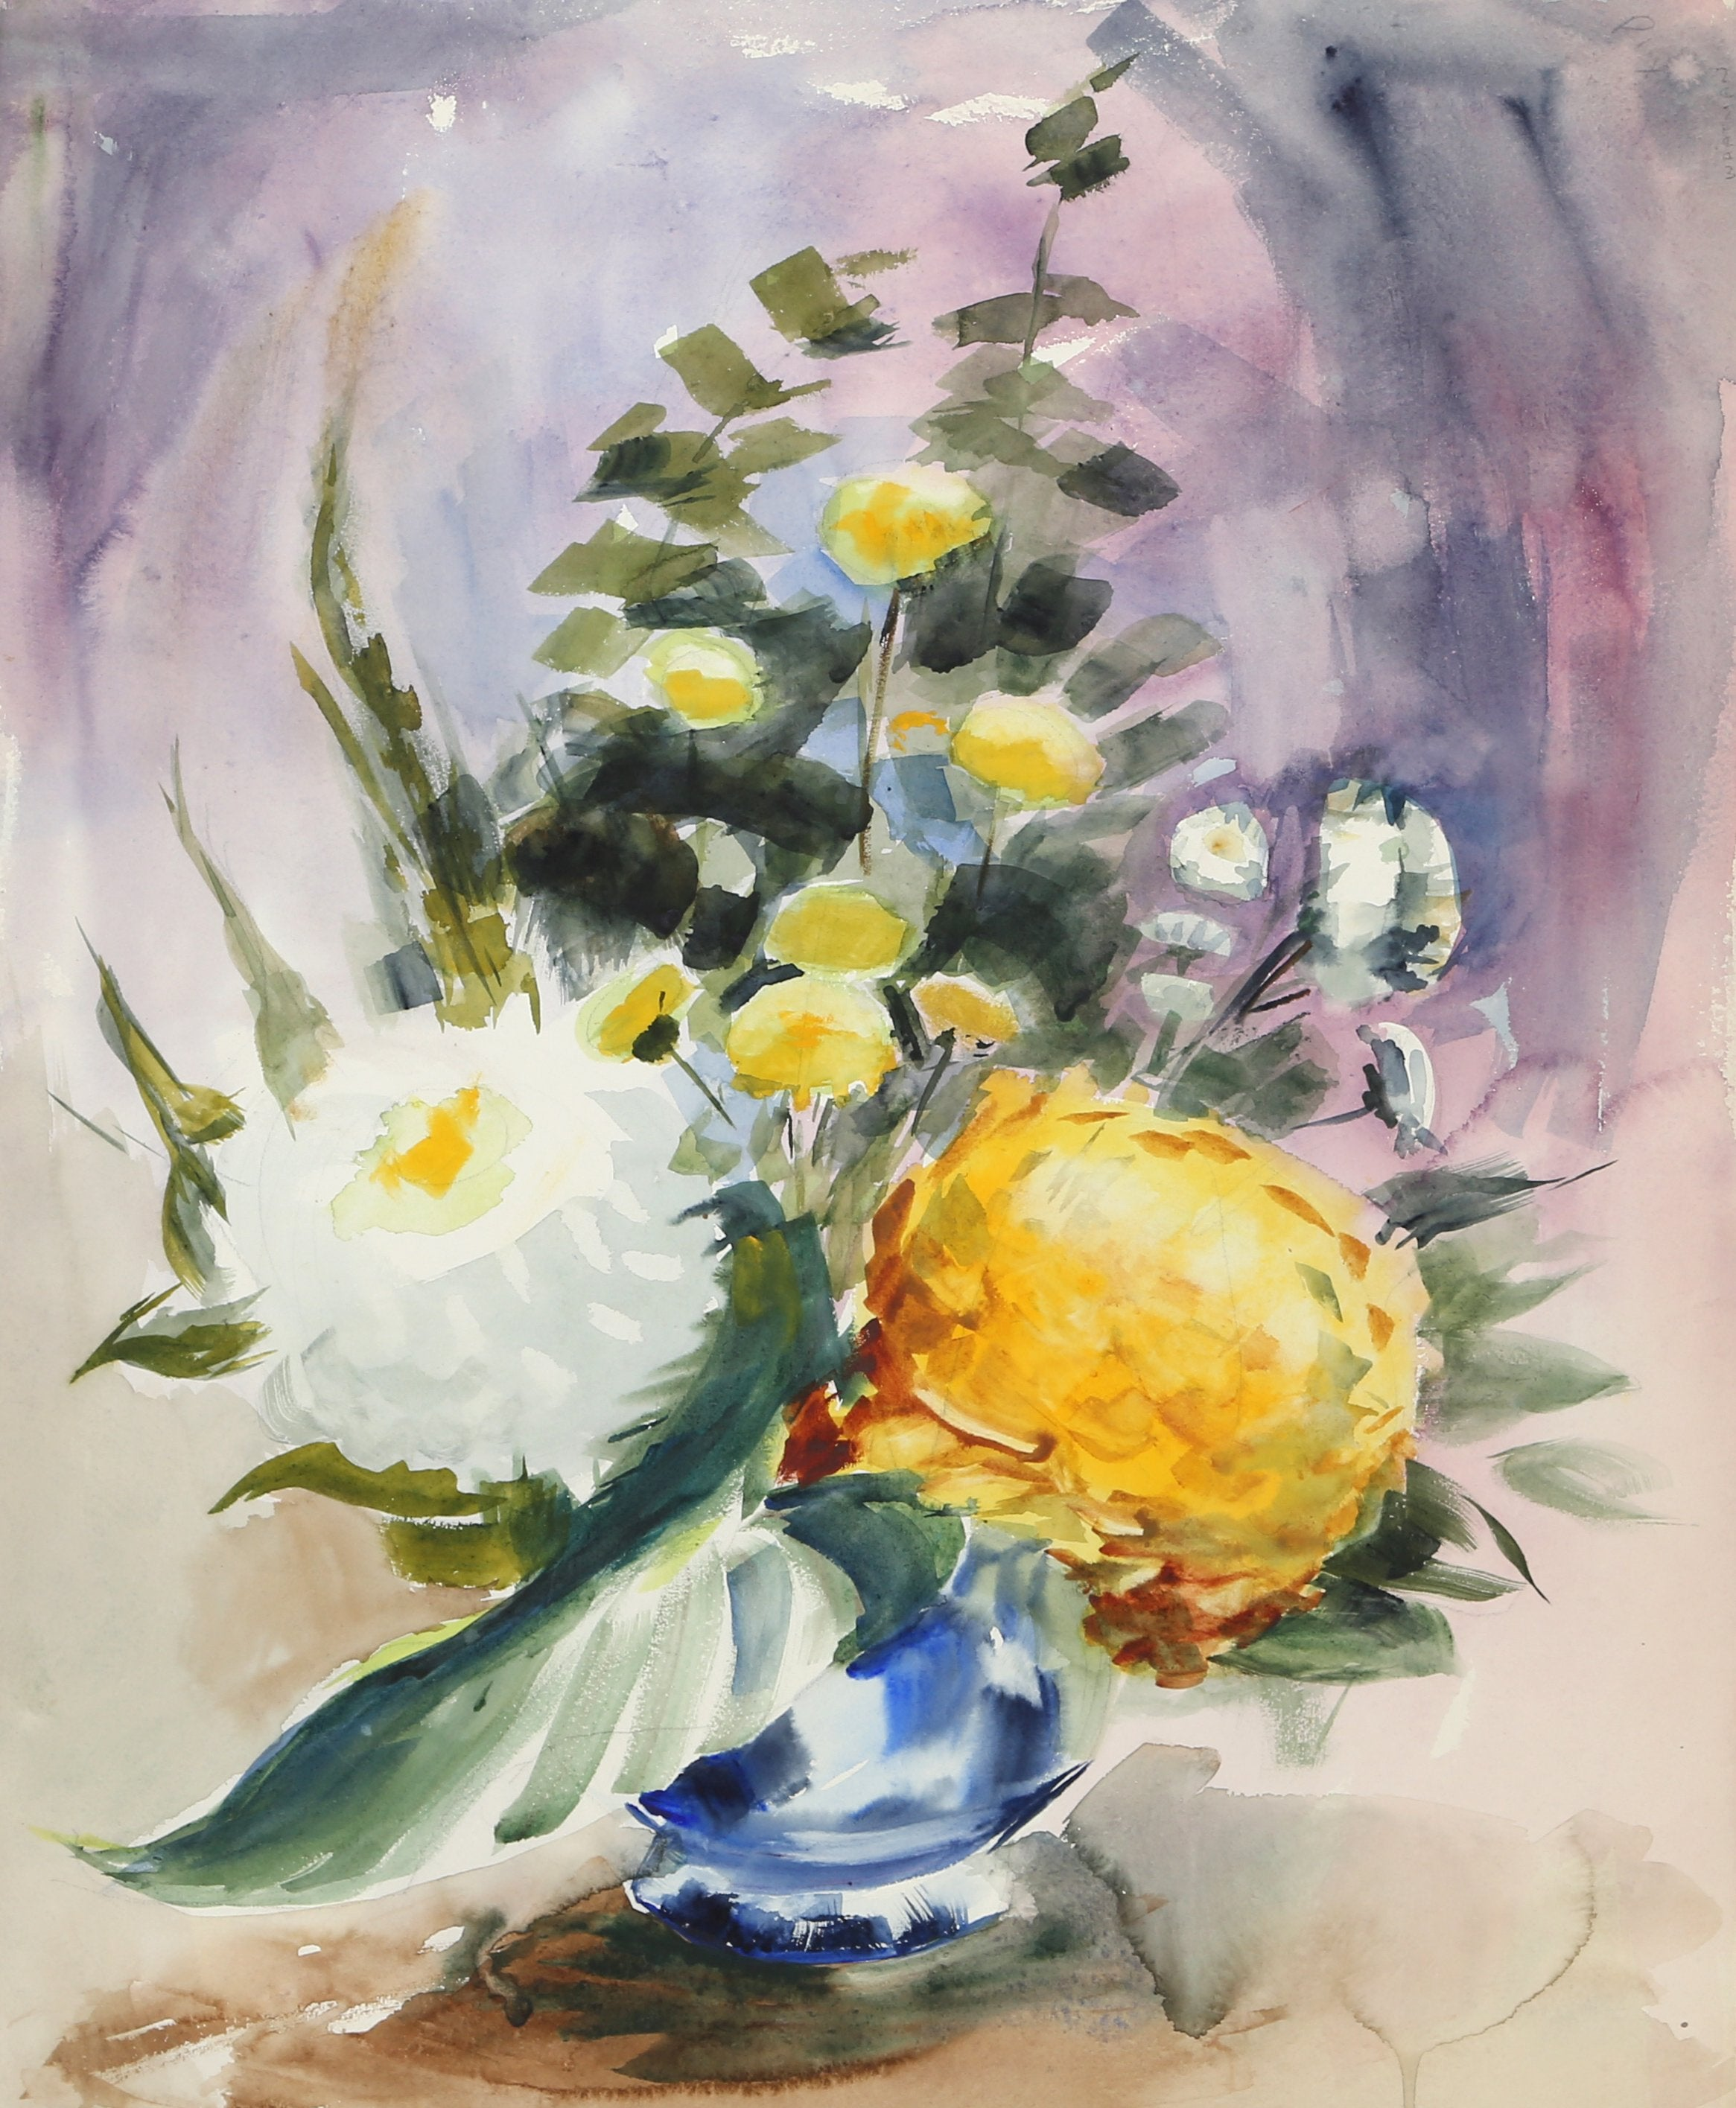 Eve Nethercott, Large Flowers in Vase (P1.34) Watercolor - RoGallery